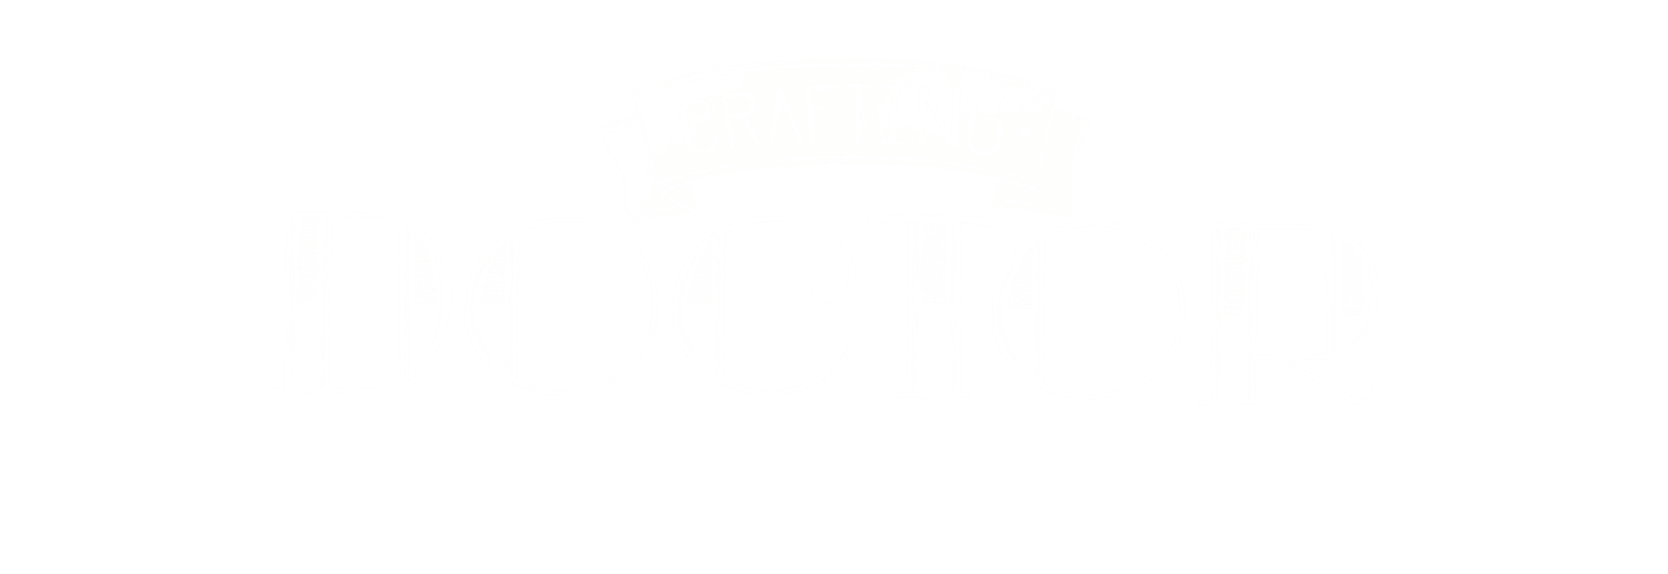 Crafting Doctor